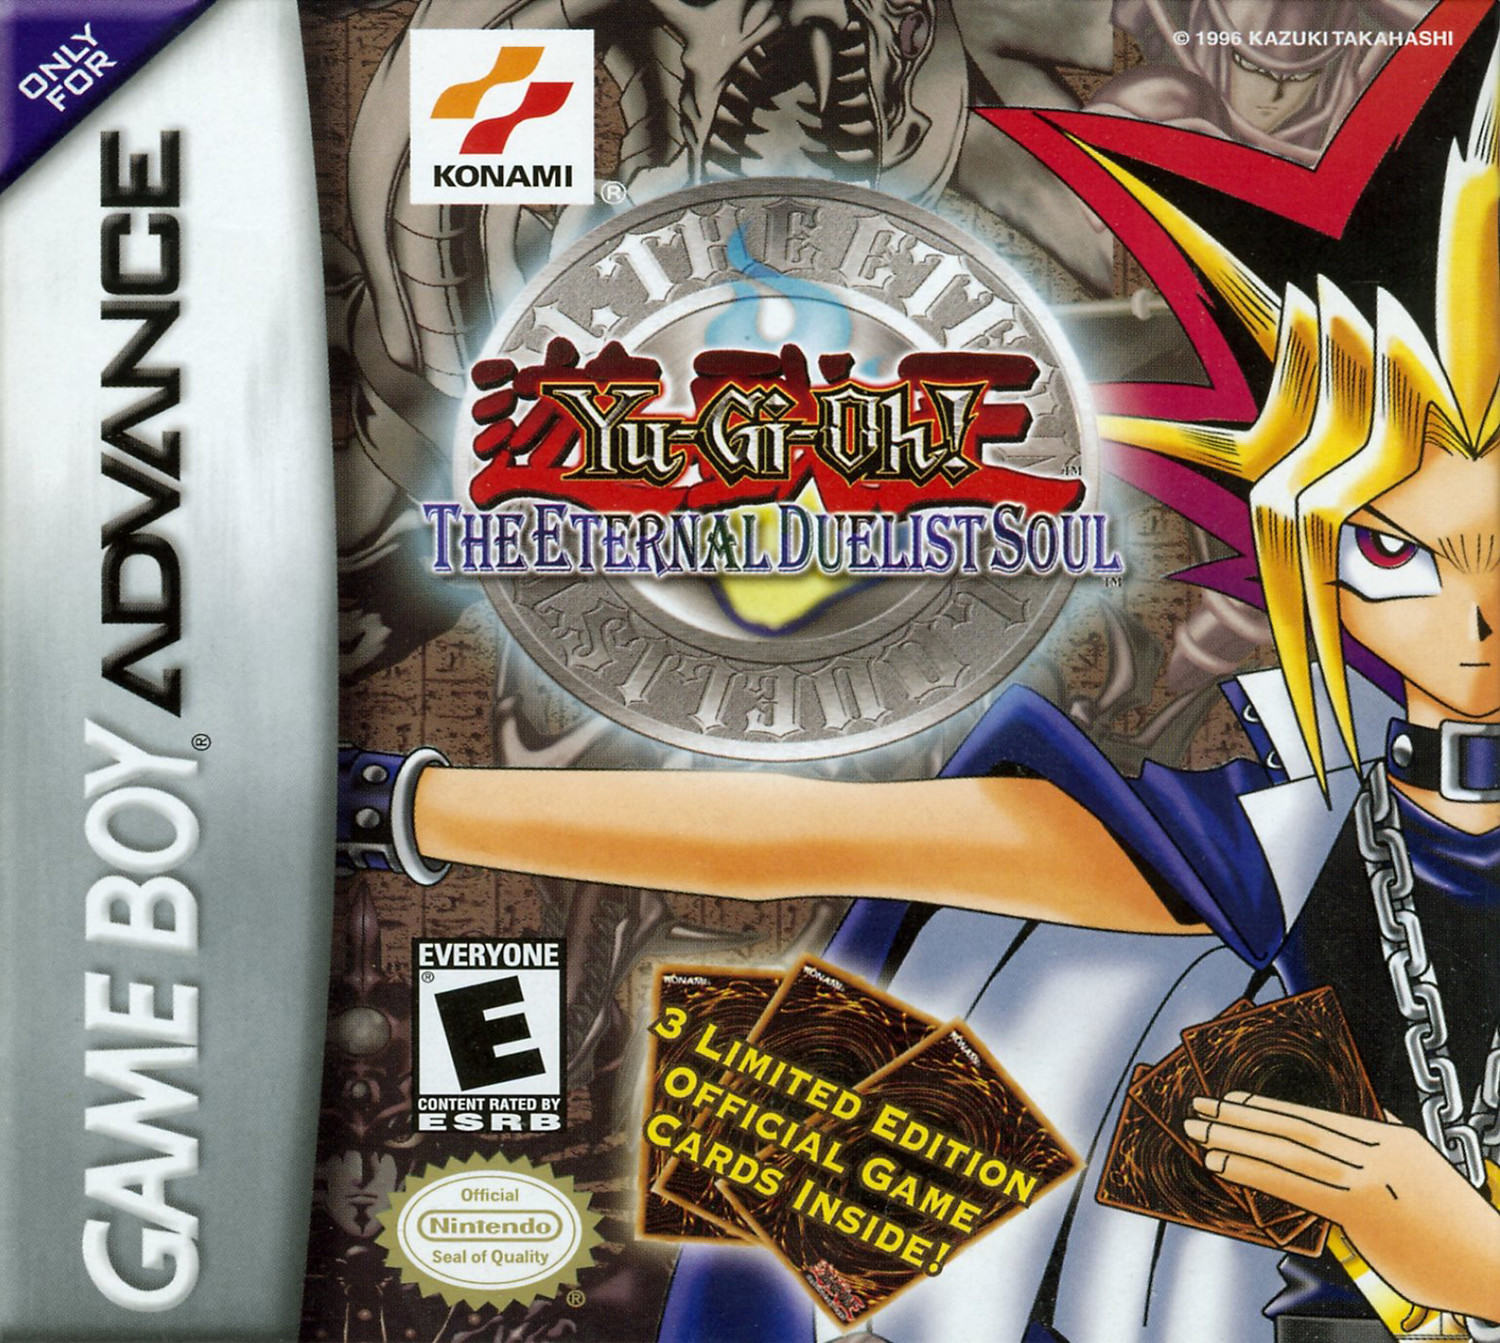 Yu-Gi-Oh! The Eternal Duelist Soul(The Immortal Duelist Soul